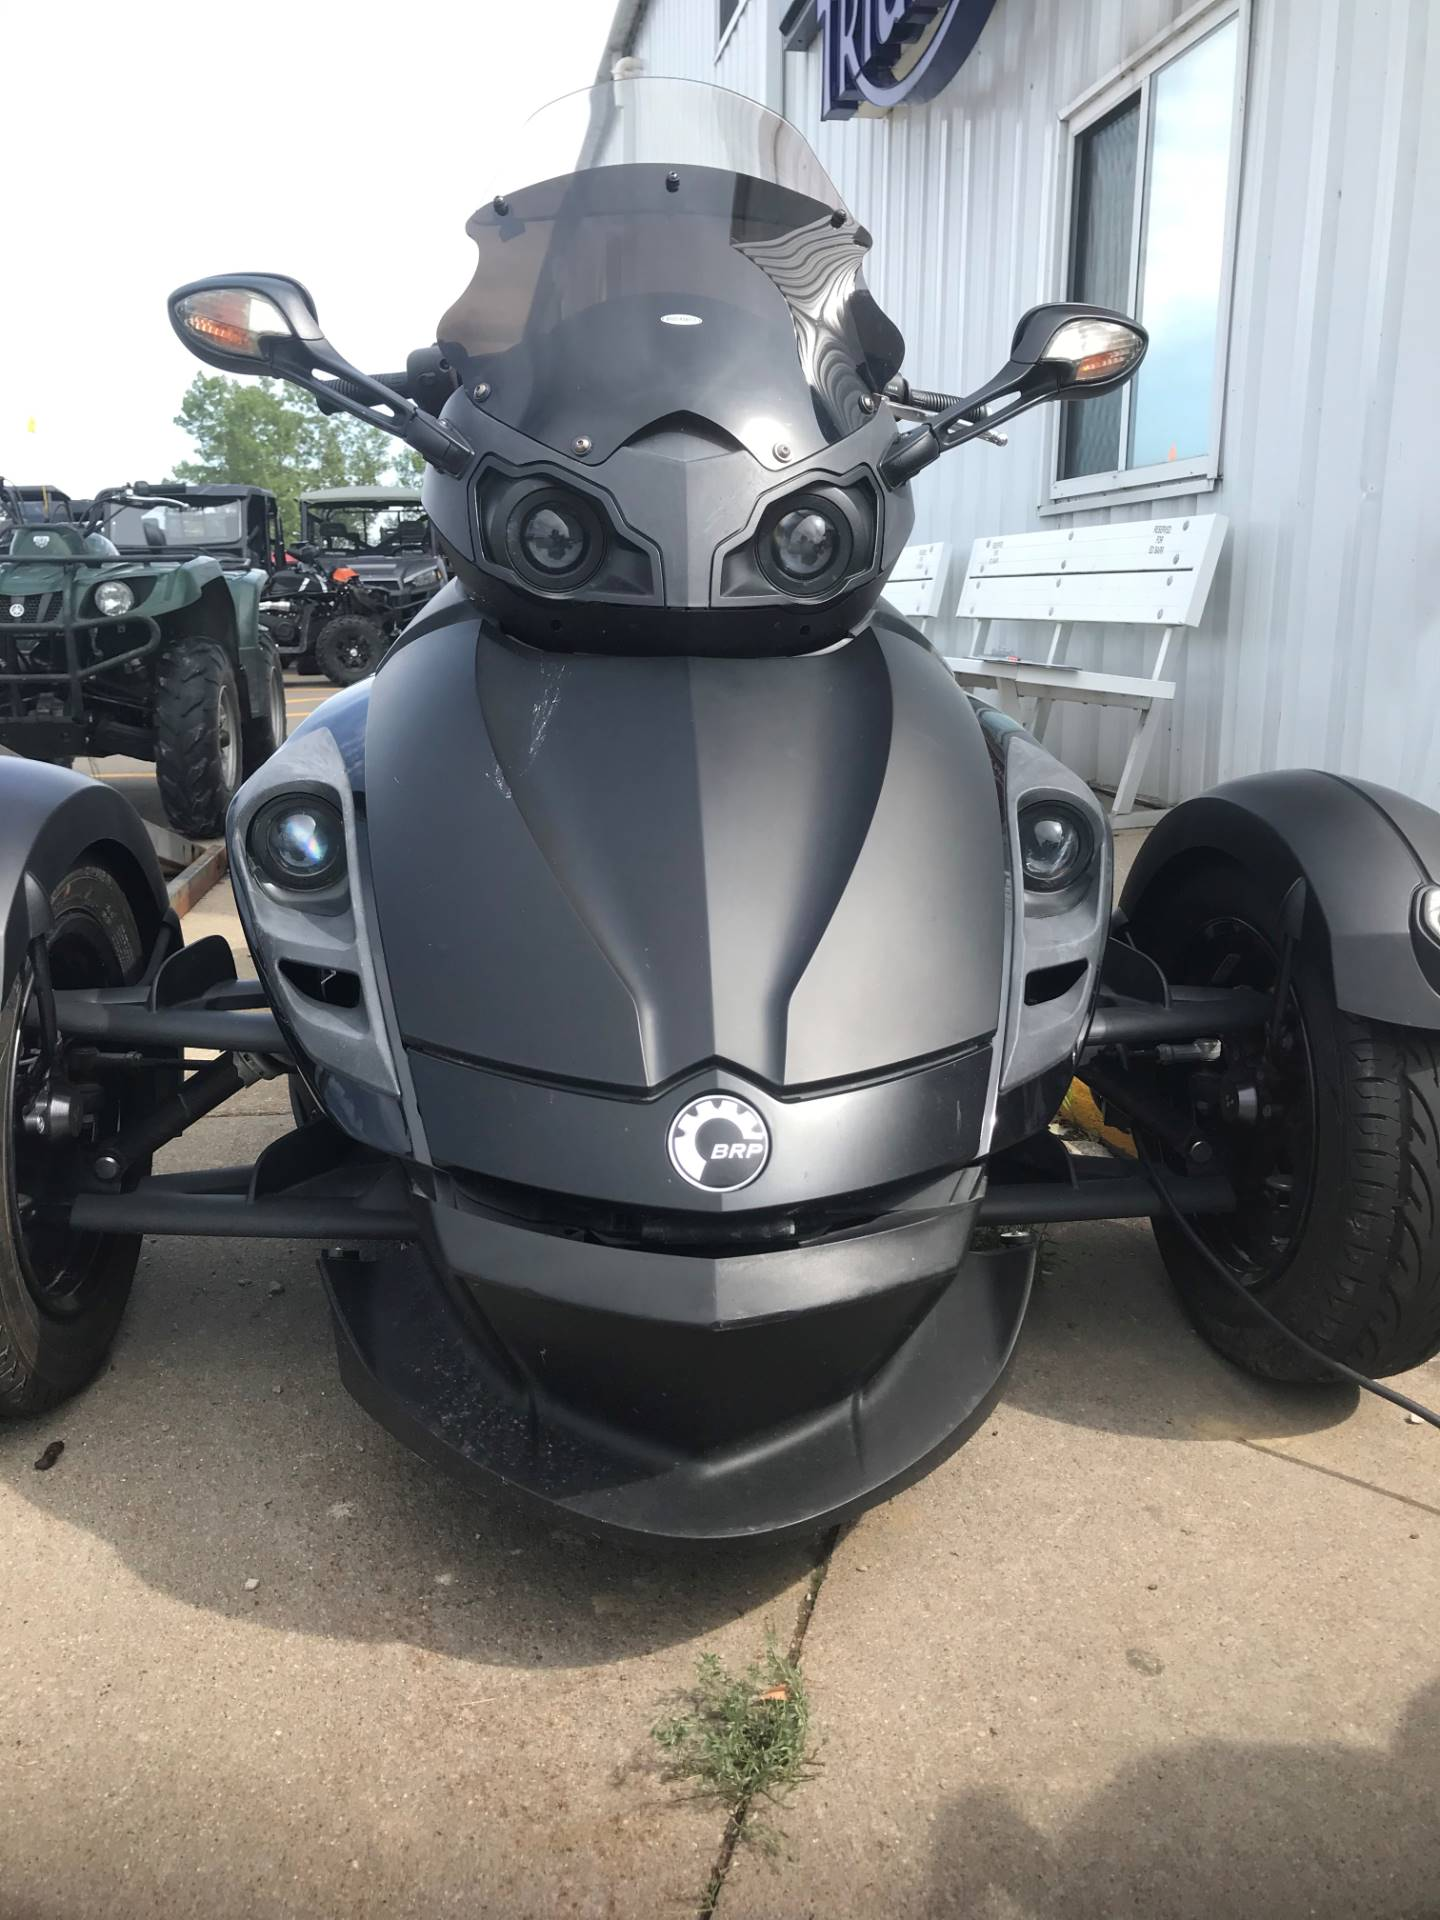 2009 Can-Am Spyder™ GS Phantom Black Limited Edition in Iowa City, Iowa - Photo 2